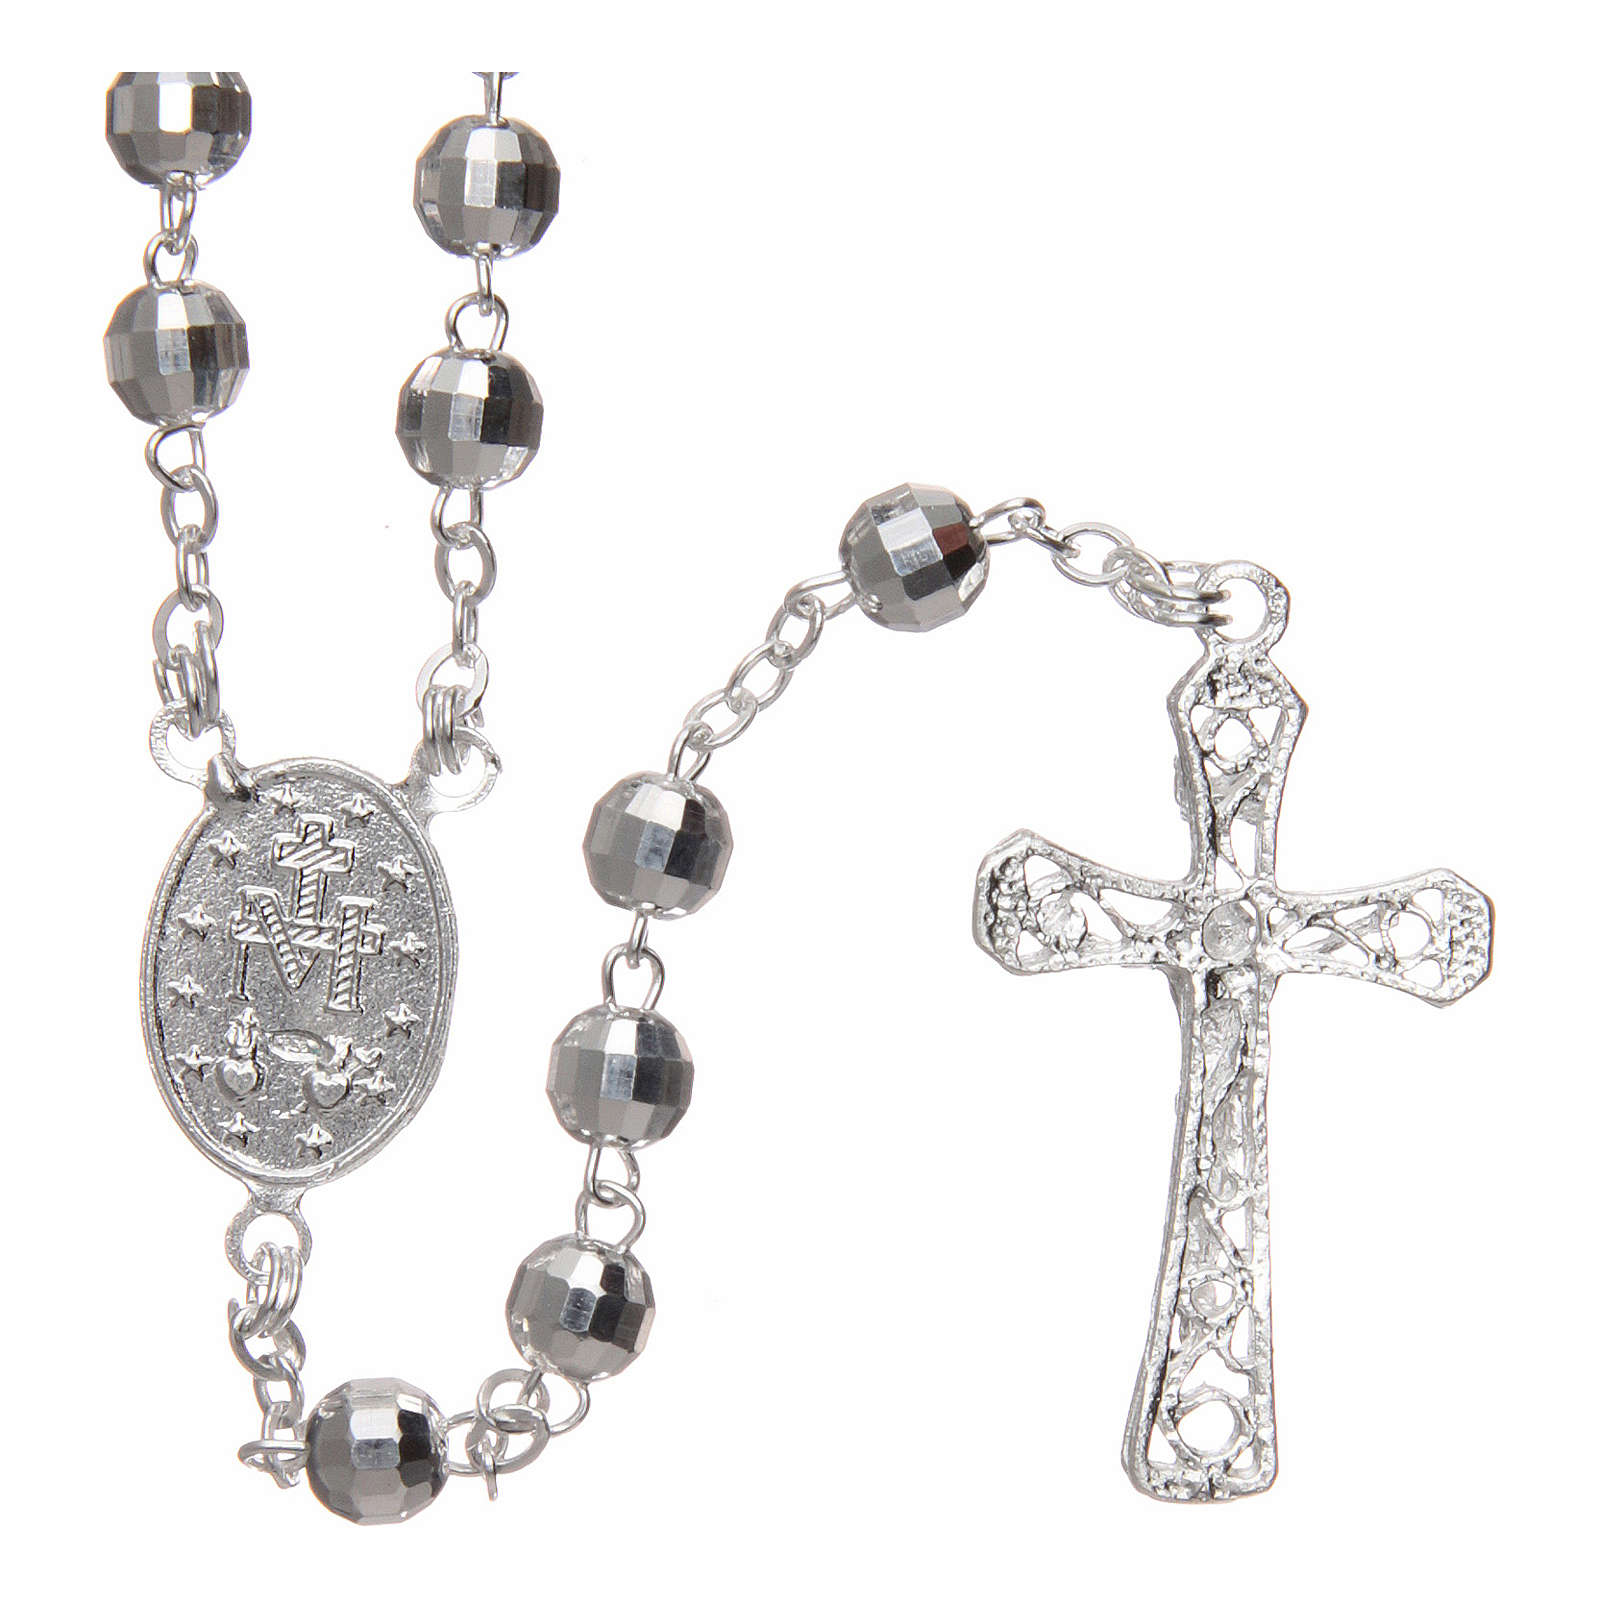 Rosary in 925 silver with 5mm beads 4